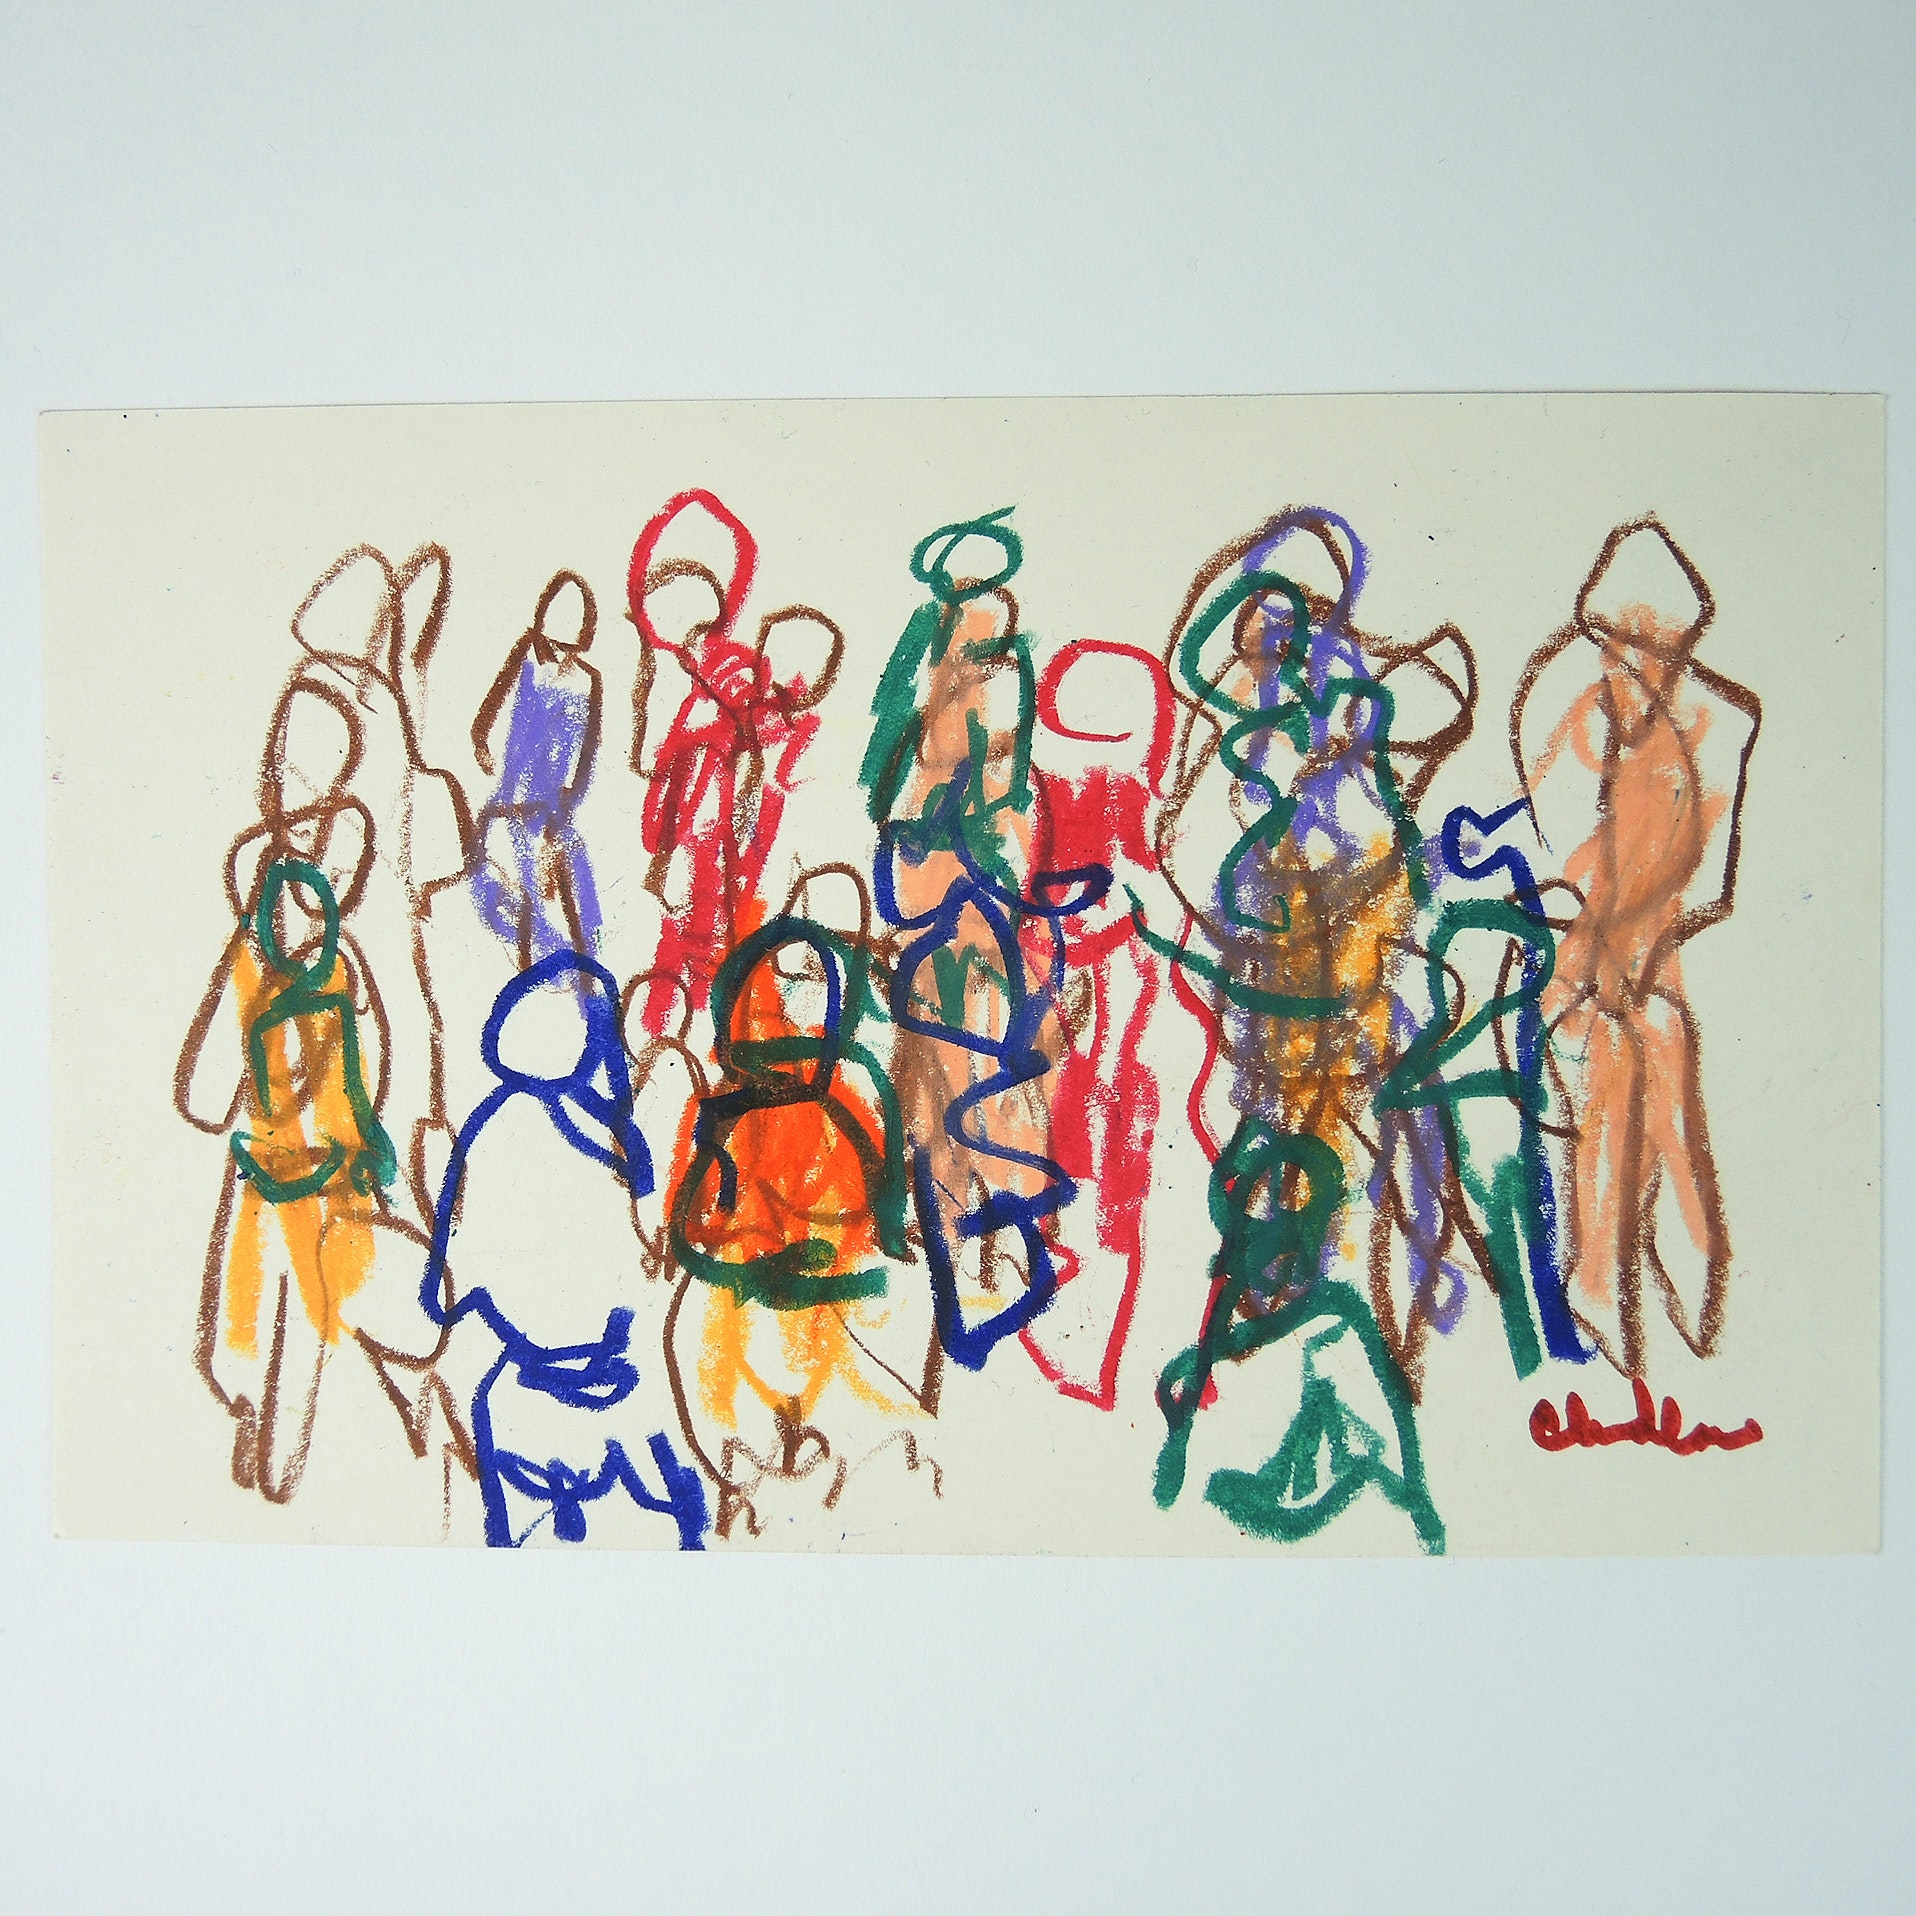 Paul Chidlaw Mixed Media on Paper Abstract Expressionism Gestural Crowd